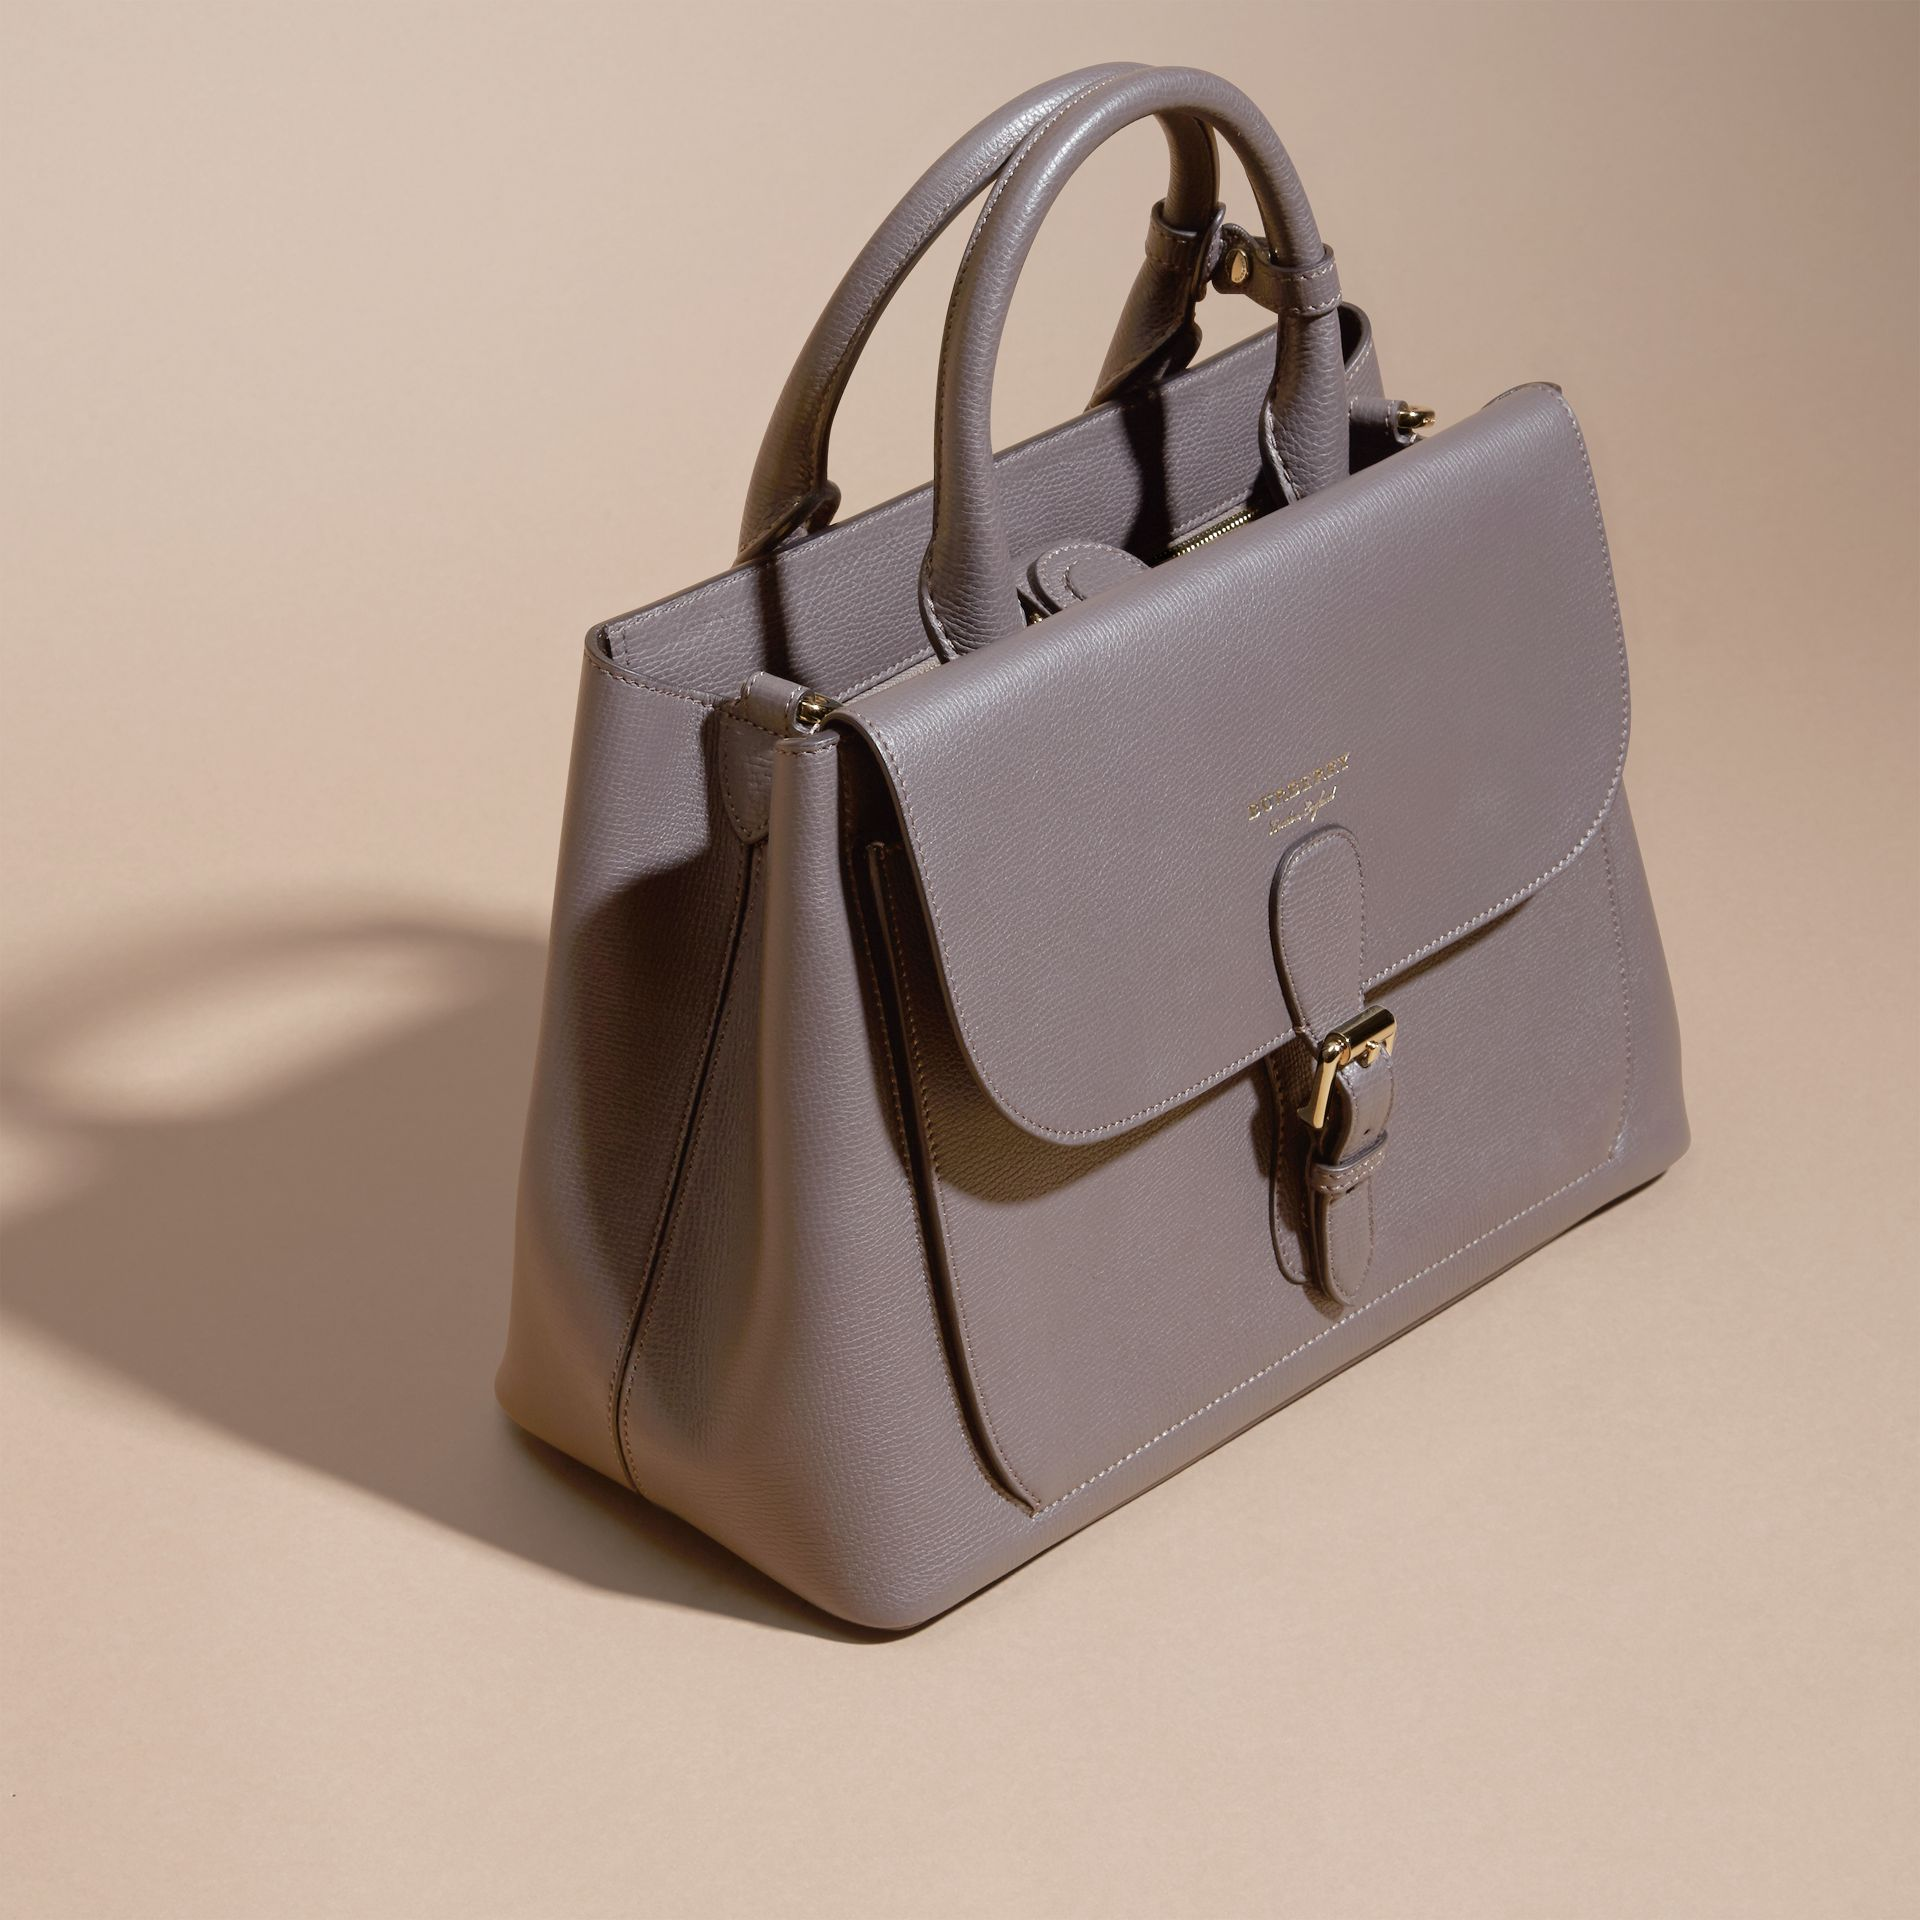 Sepia grey The Medium Saddle Bag in Grainy Bonded Leather Sepia Grey - gallery image 7